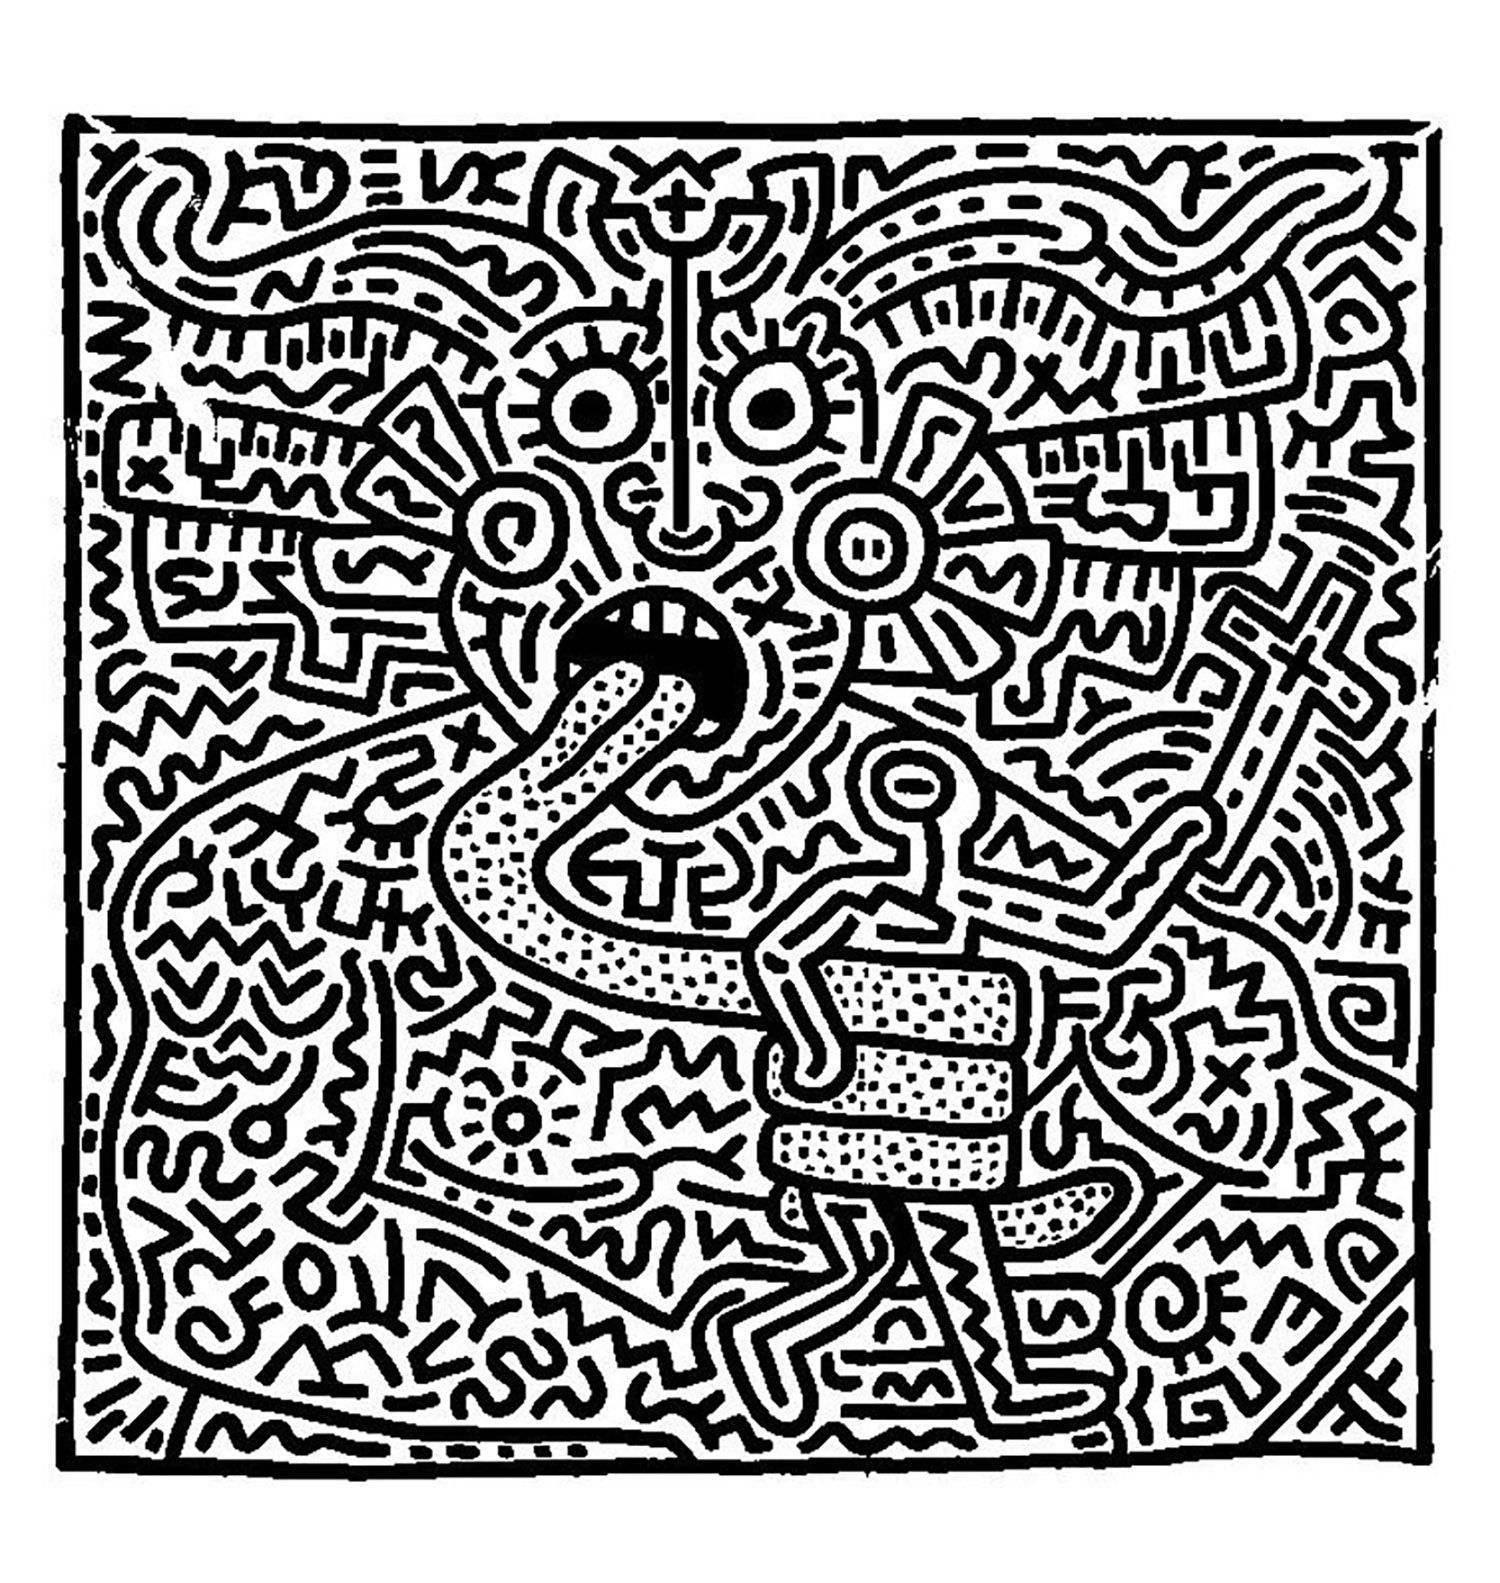 - Keith Haring 1 - Pop Art Coloring Pages For Adults - Just Color